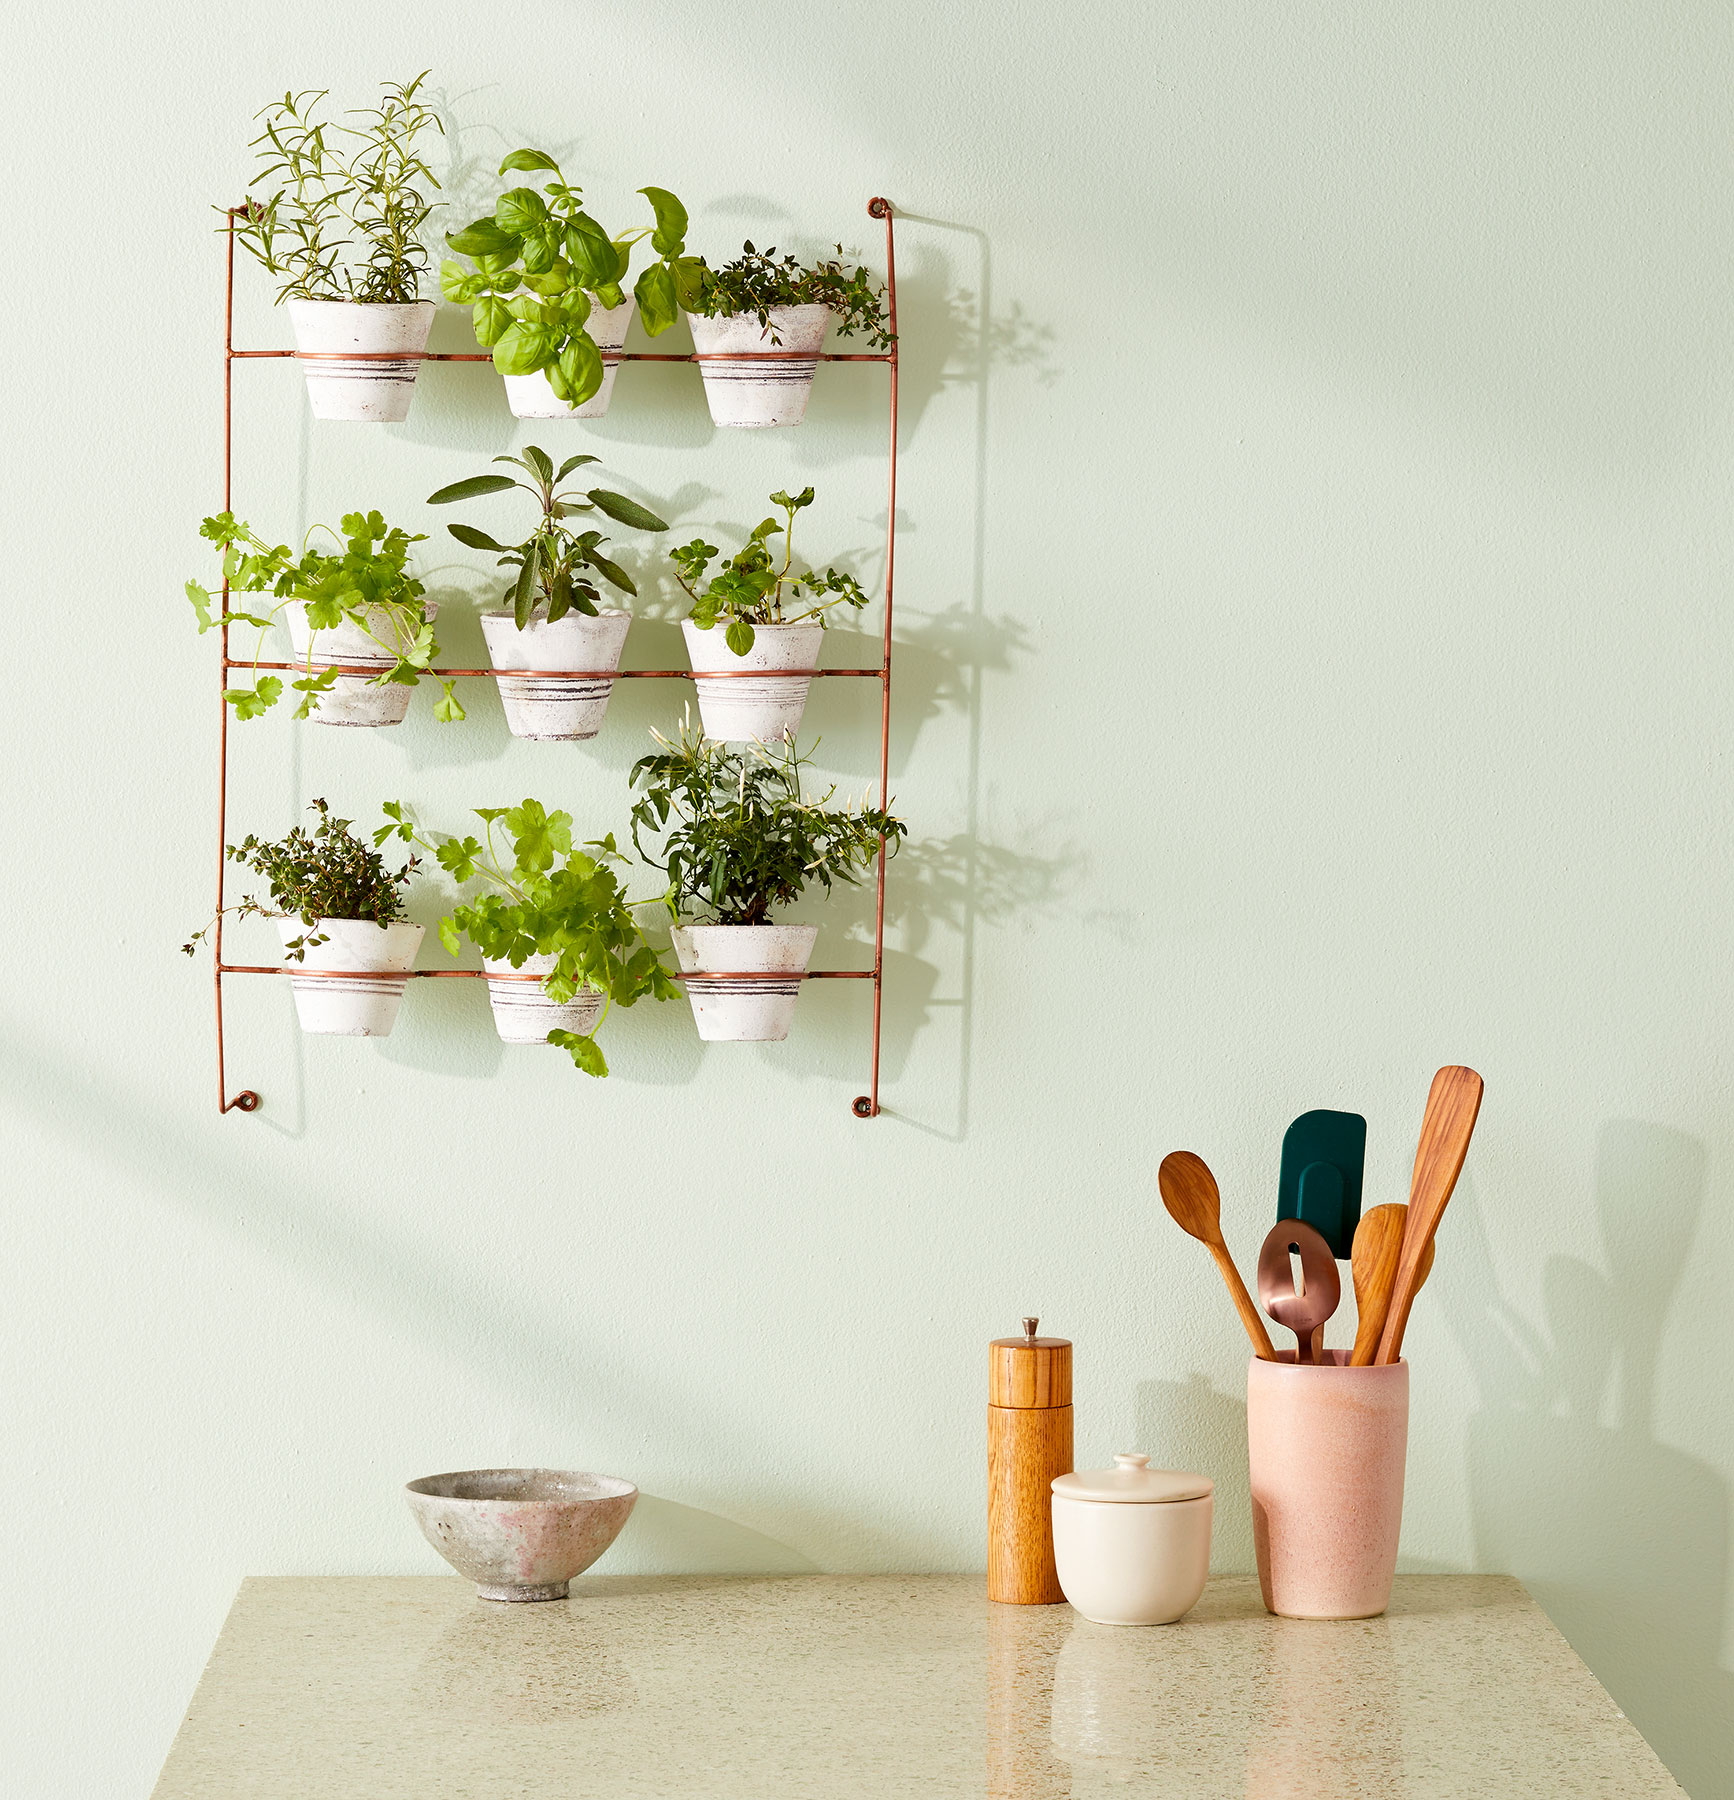 9 Indoor Gardening Essentials to Take Plant Care to the Next Level